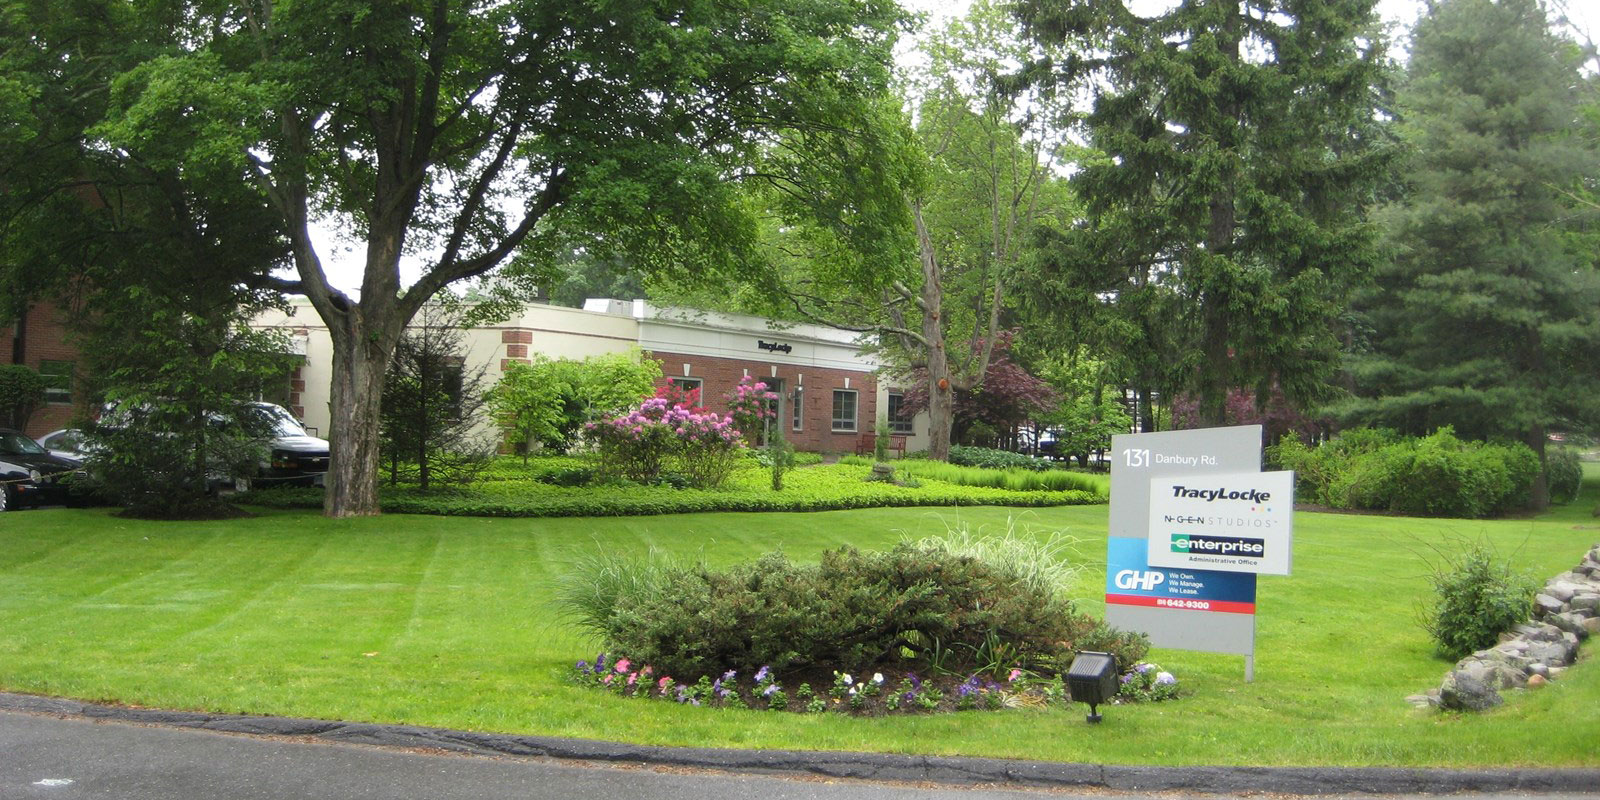 131 Danbury Road – Wilton, CT 06897 – 2,339 sq. ft.